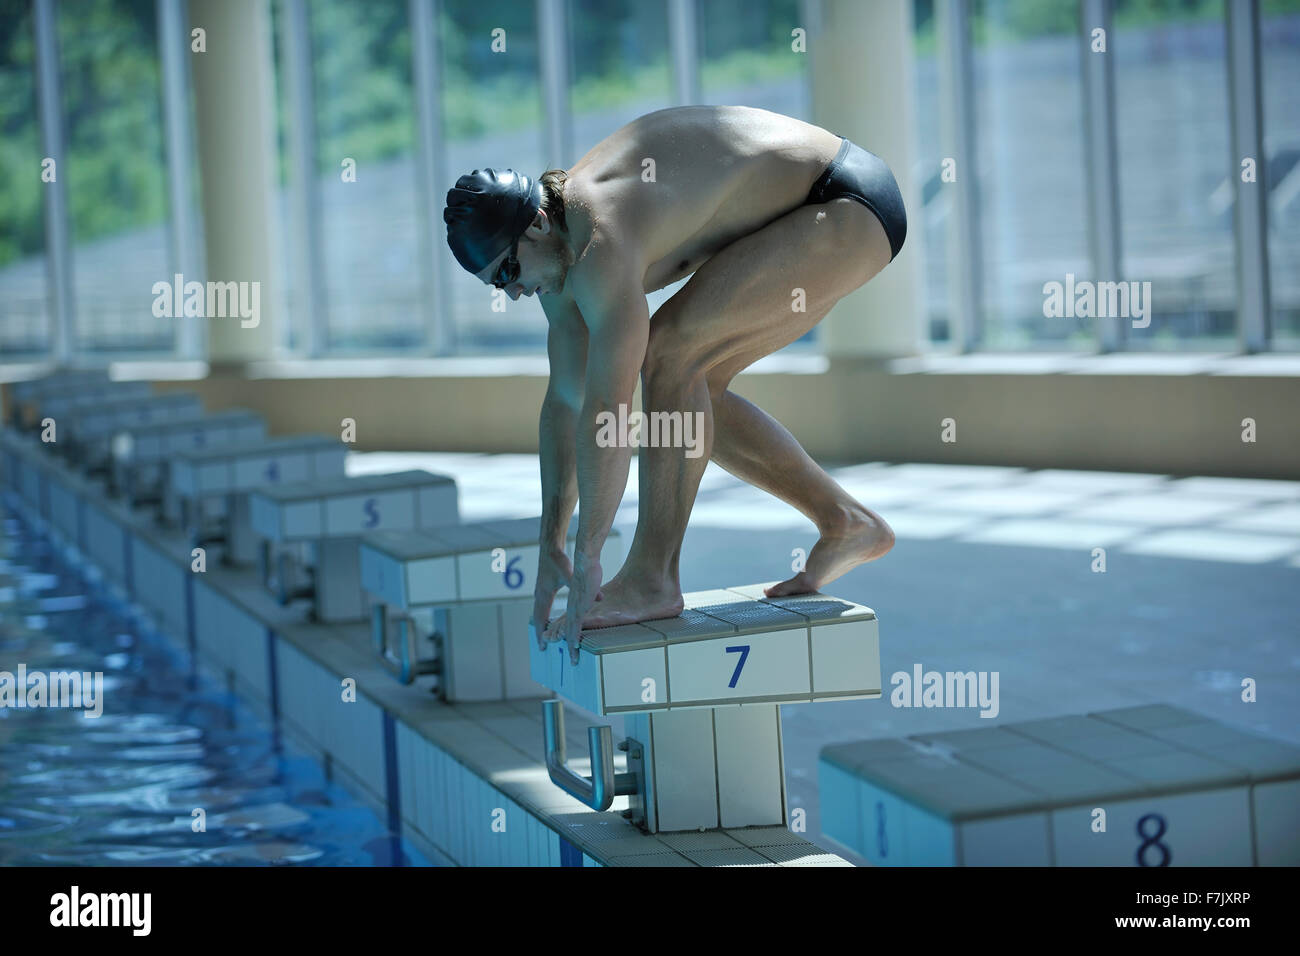 Attractive Young Swimmer On Swim Start At Swimming Pool Ready For Jump Race And Win